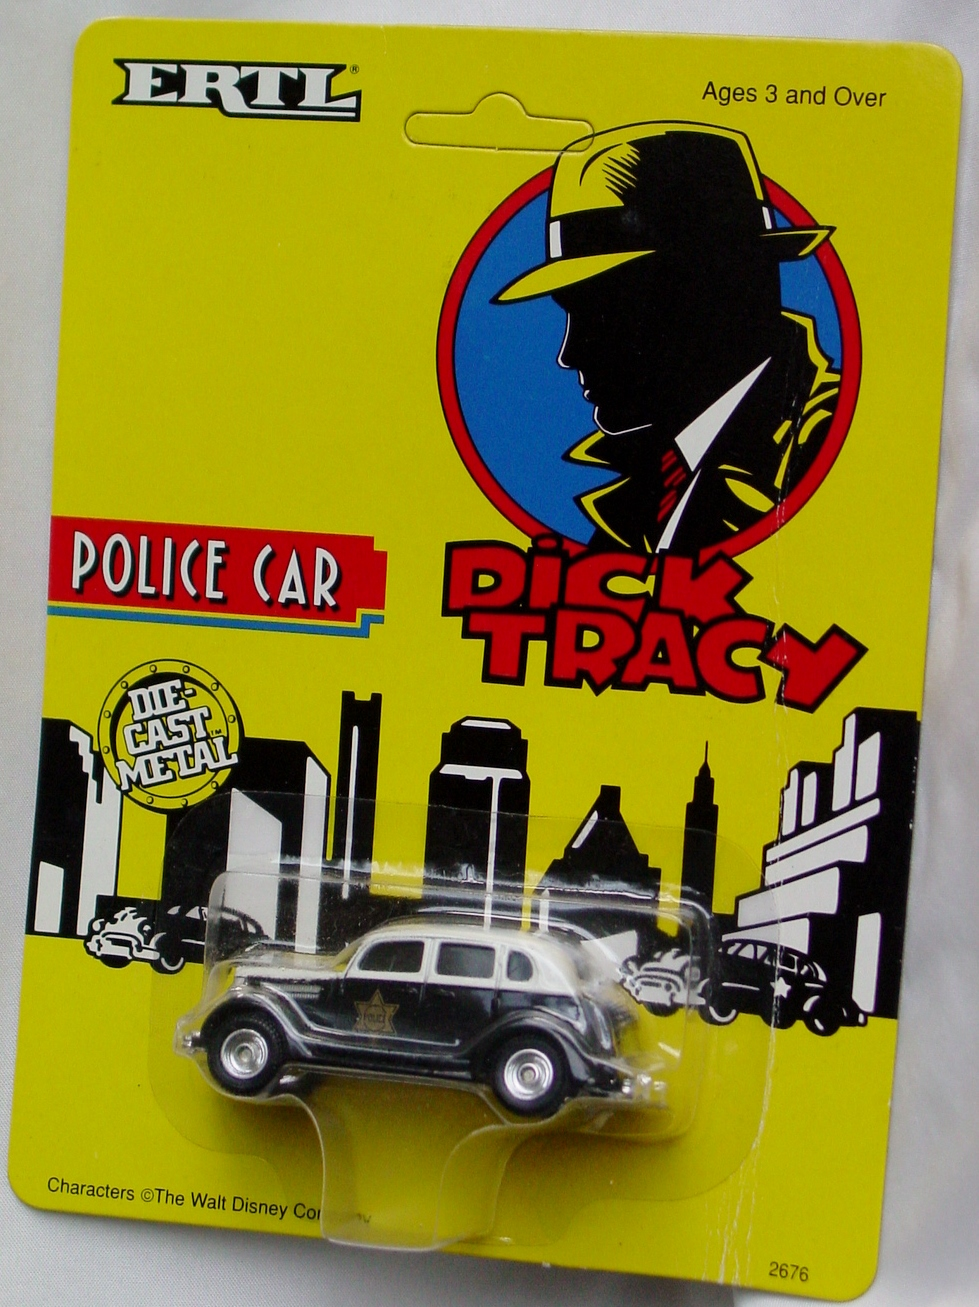 64 - ERTL DICK TRACY Police Car